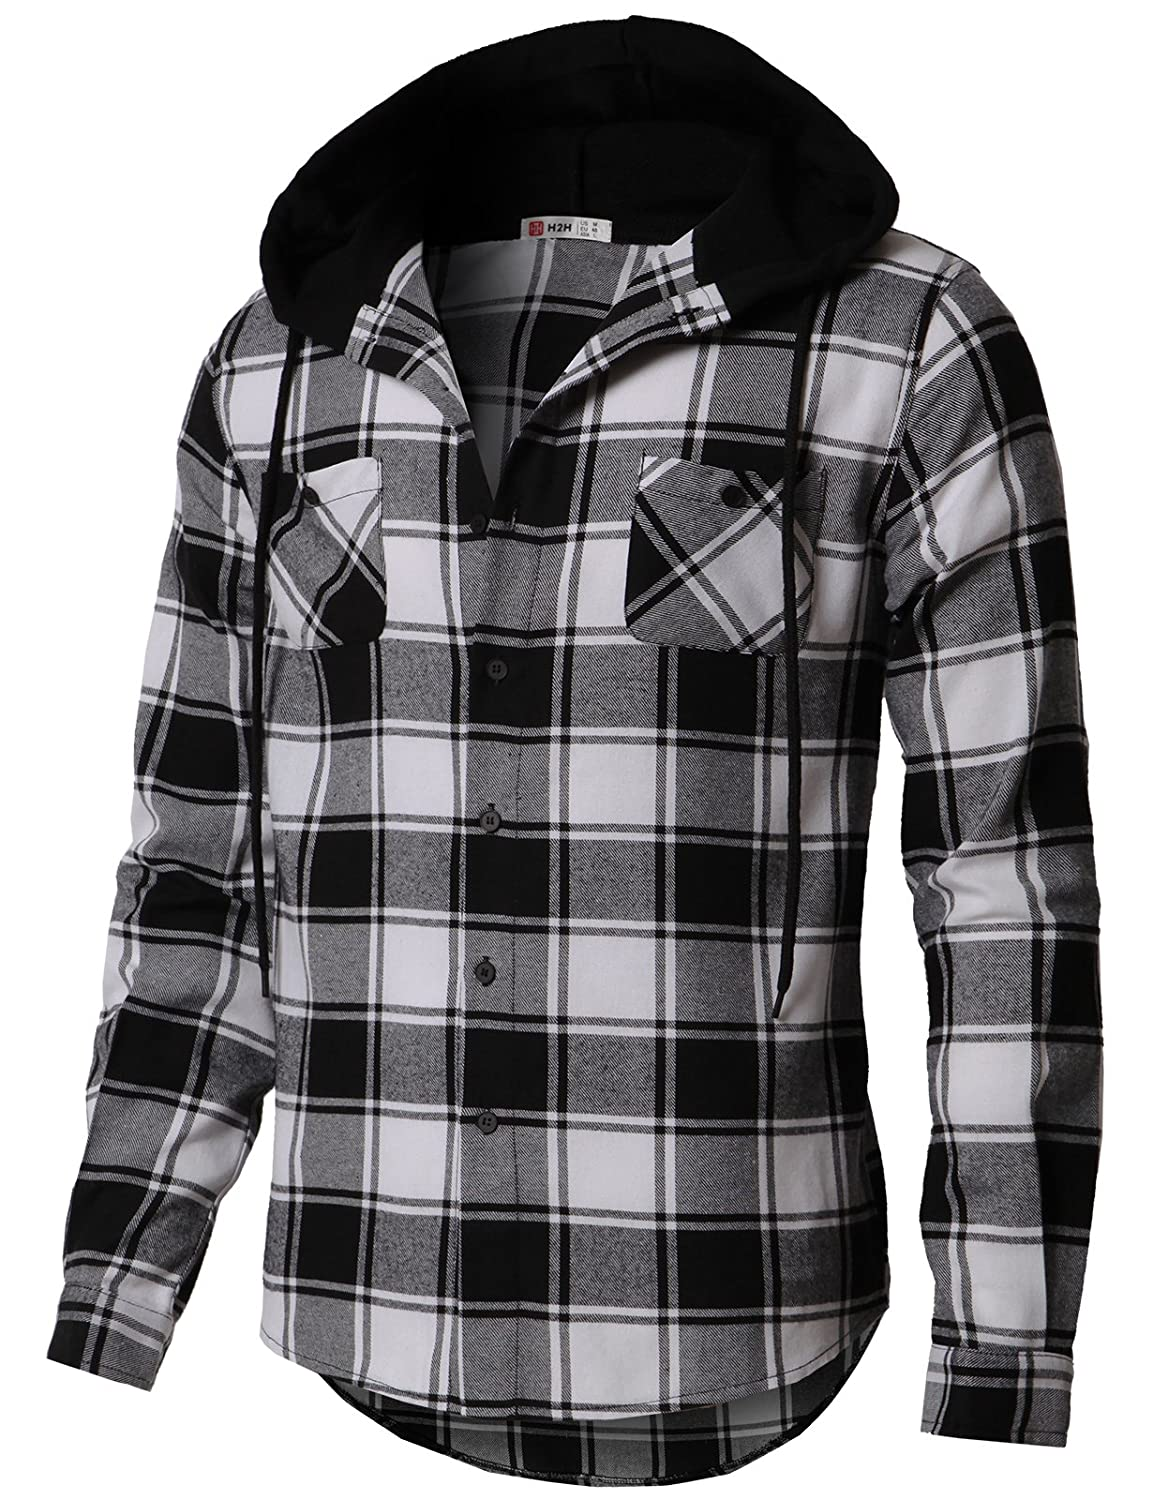 H2H Men's Flannel Plaid Checkered Long Sleeve Shirt Hoodie With Front Pockets #CMOJA0105